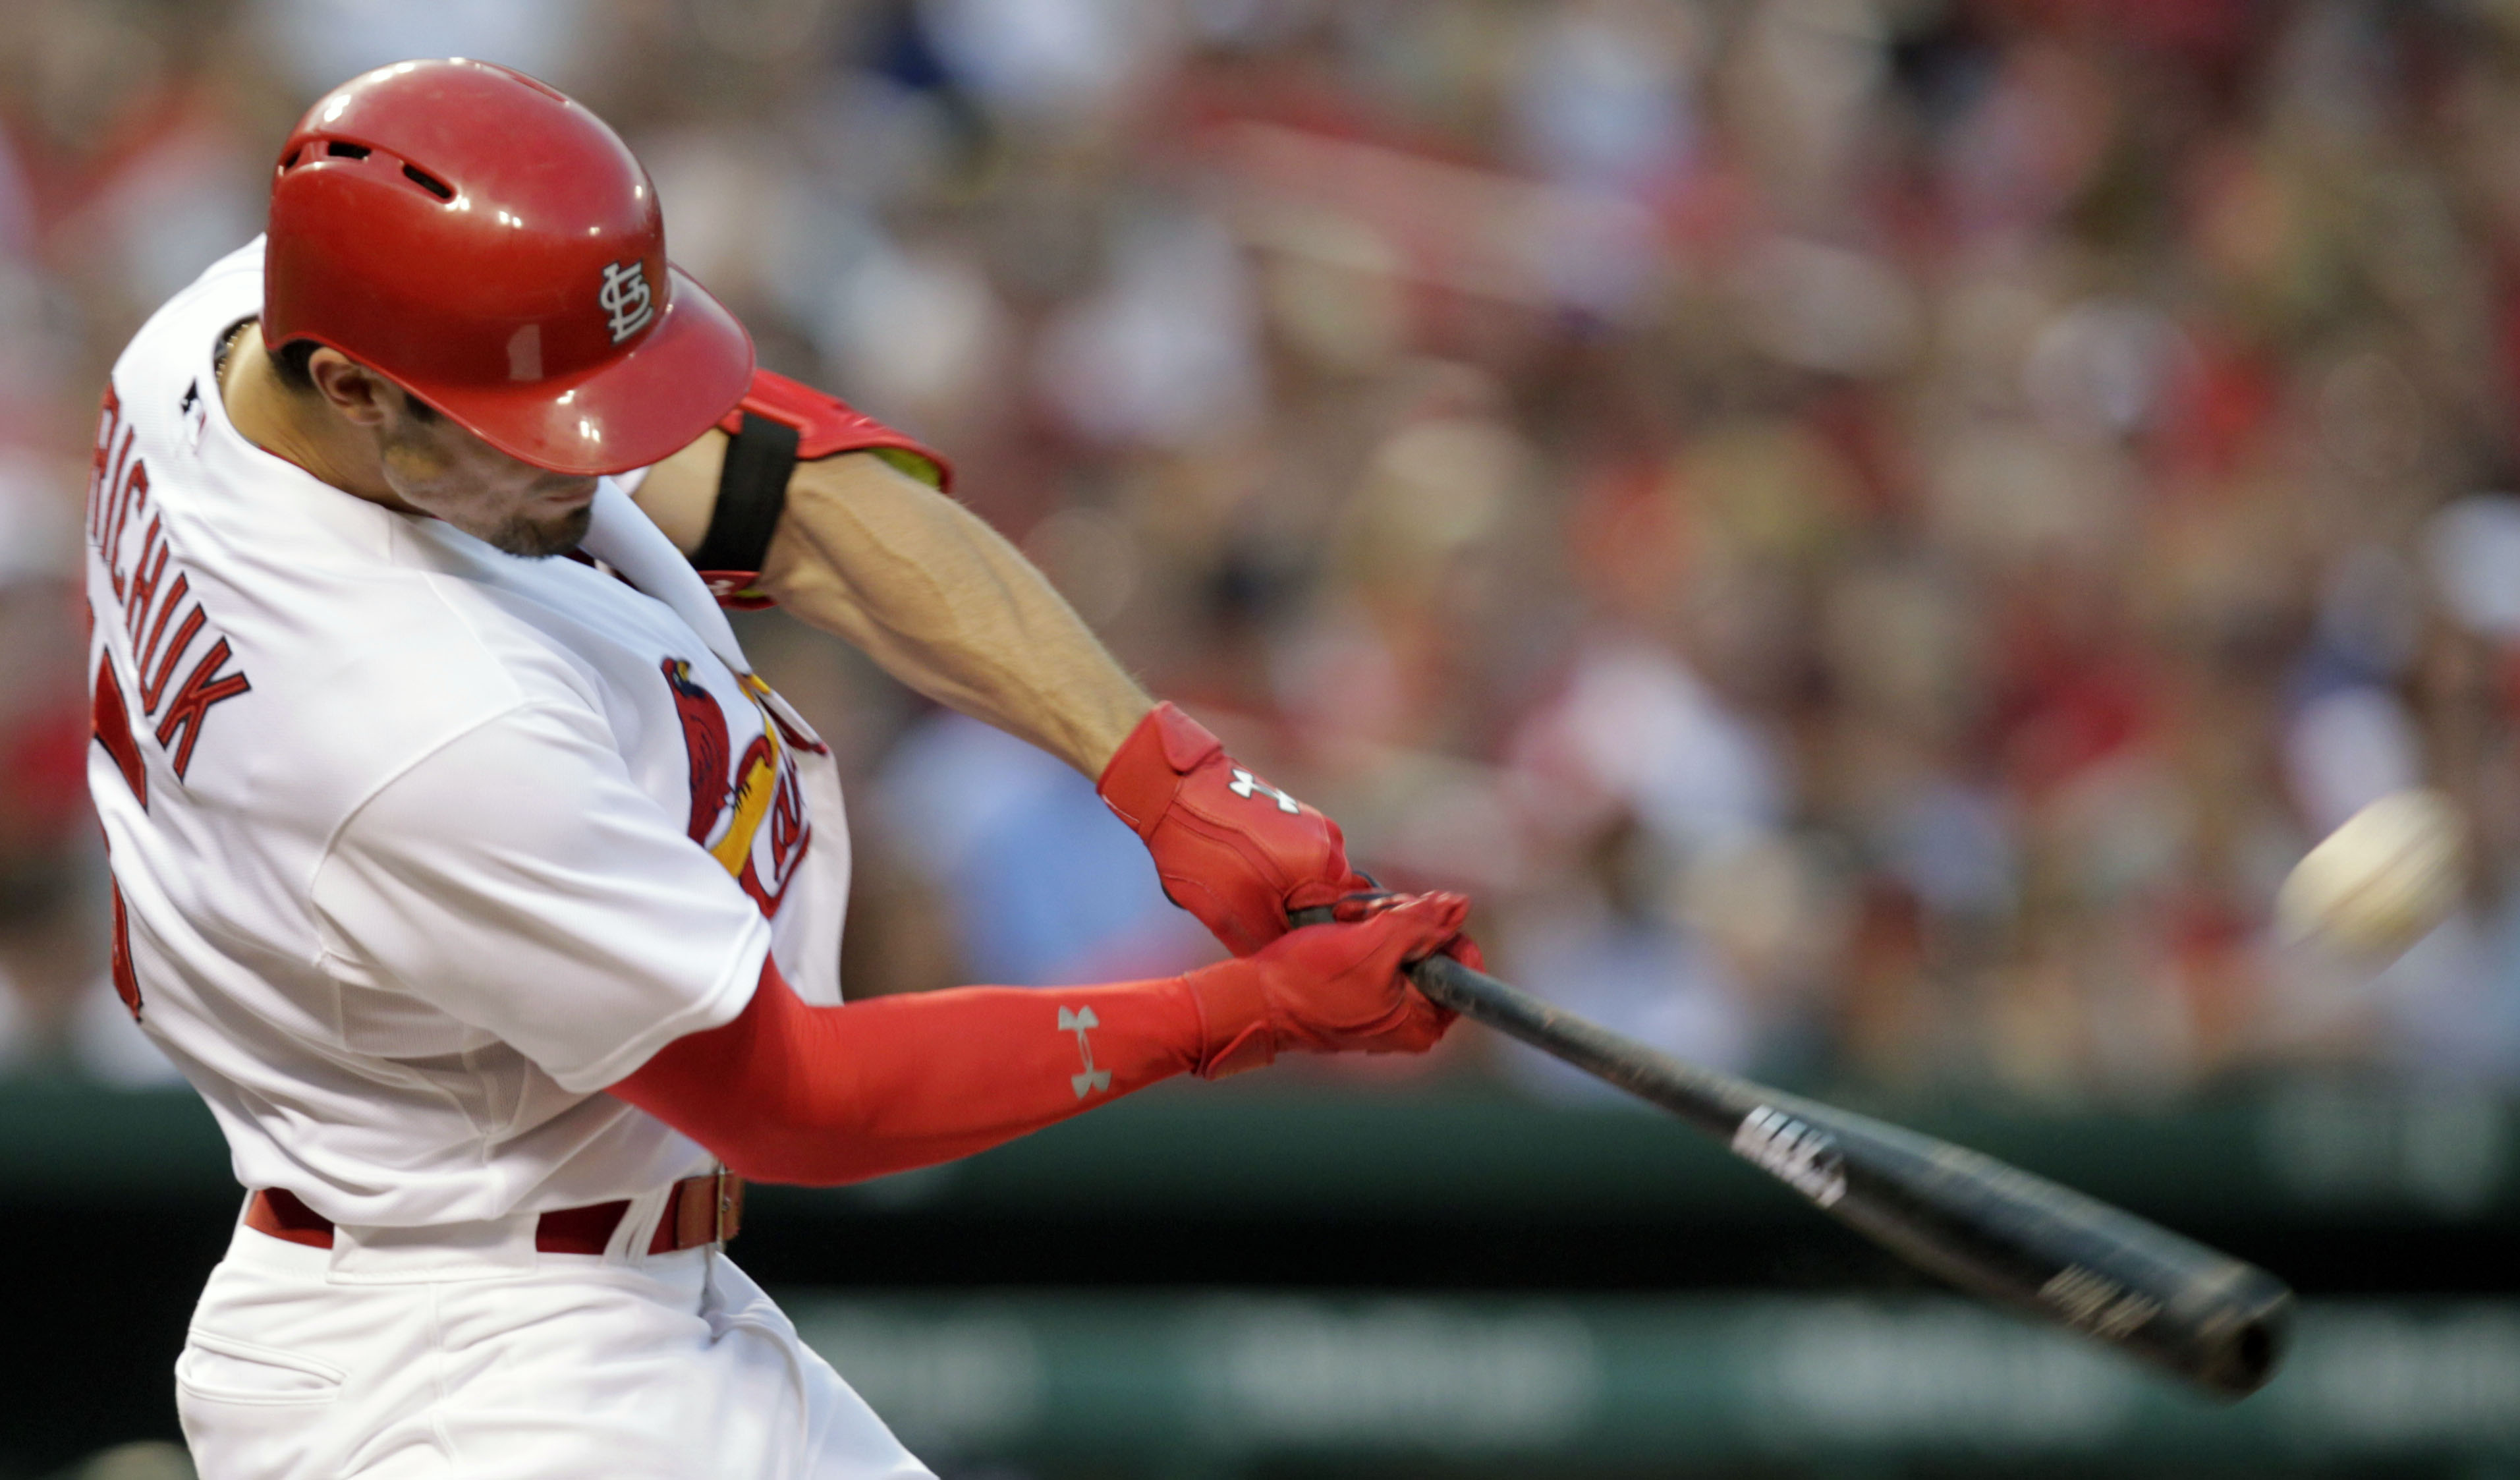 St. Louis Cardinals' Randal Grichuk connects for a two-run home run in the second inning of a baseball game against the Atlanta Braves, Friday, July 24, 2015 in St. Louis.(AP Photo/Tom Gannam)